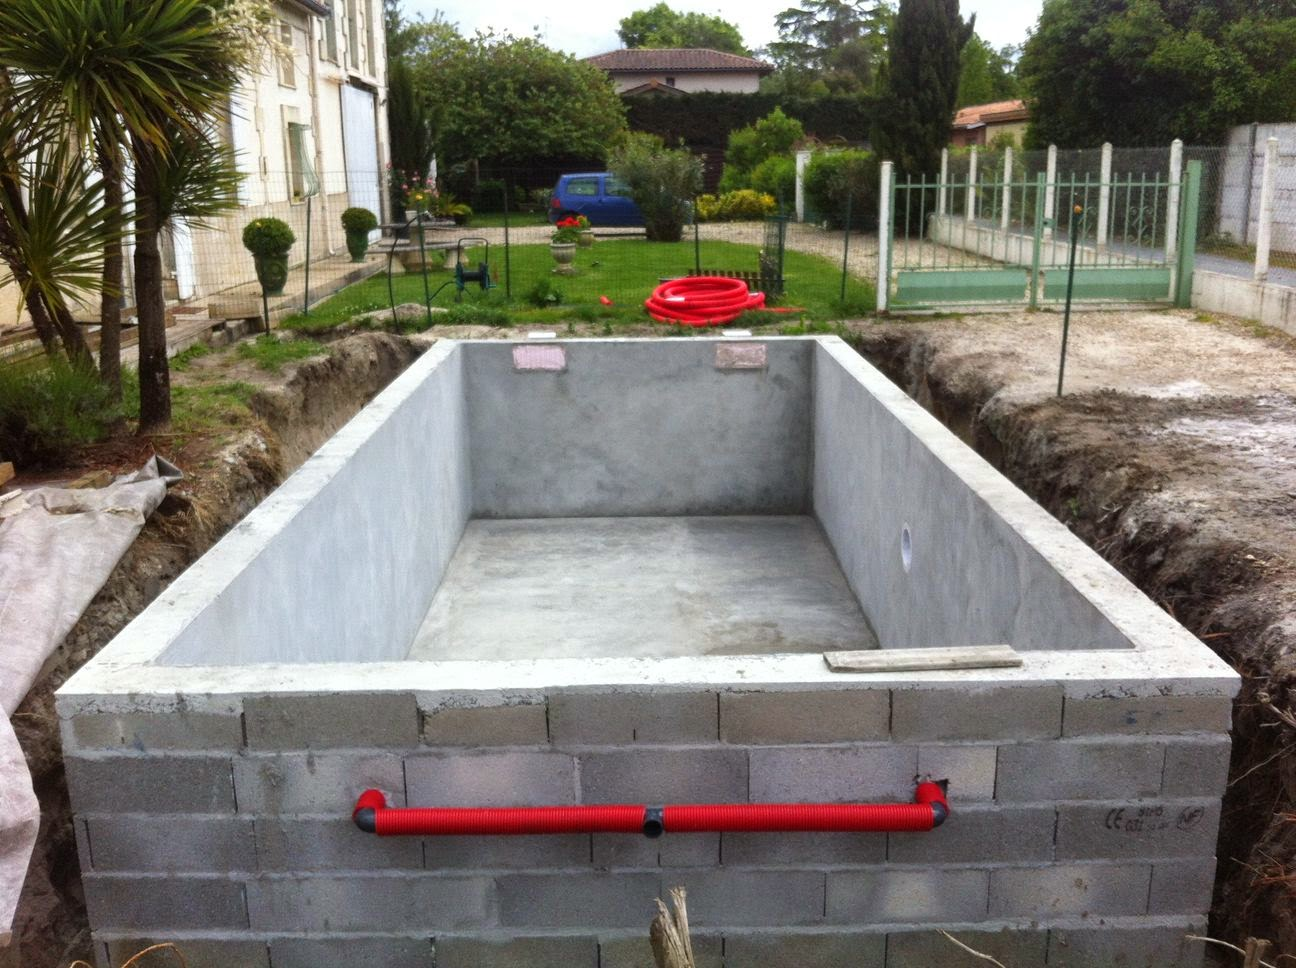 Projet tapes de construction d 39 une piscine en for Construction de piscines